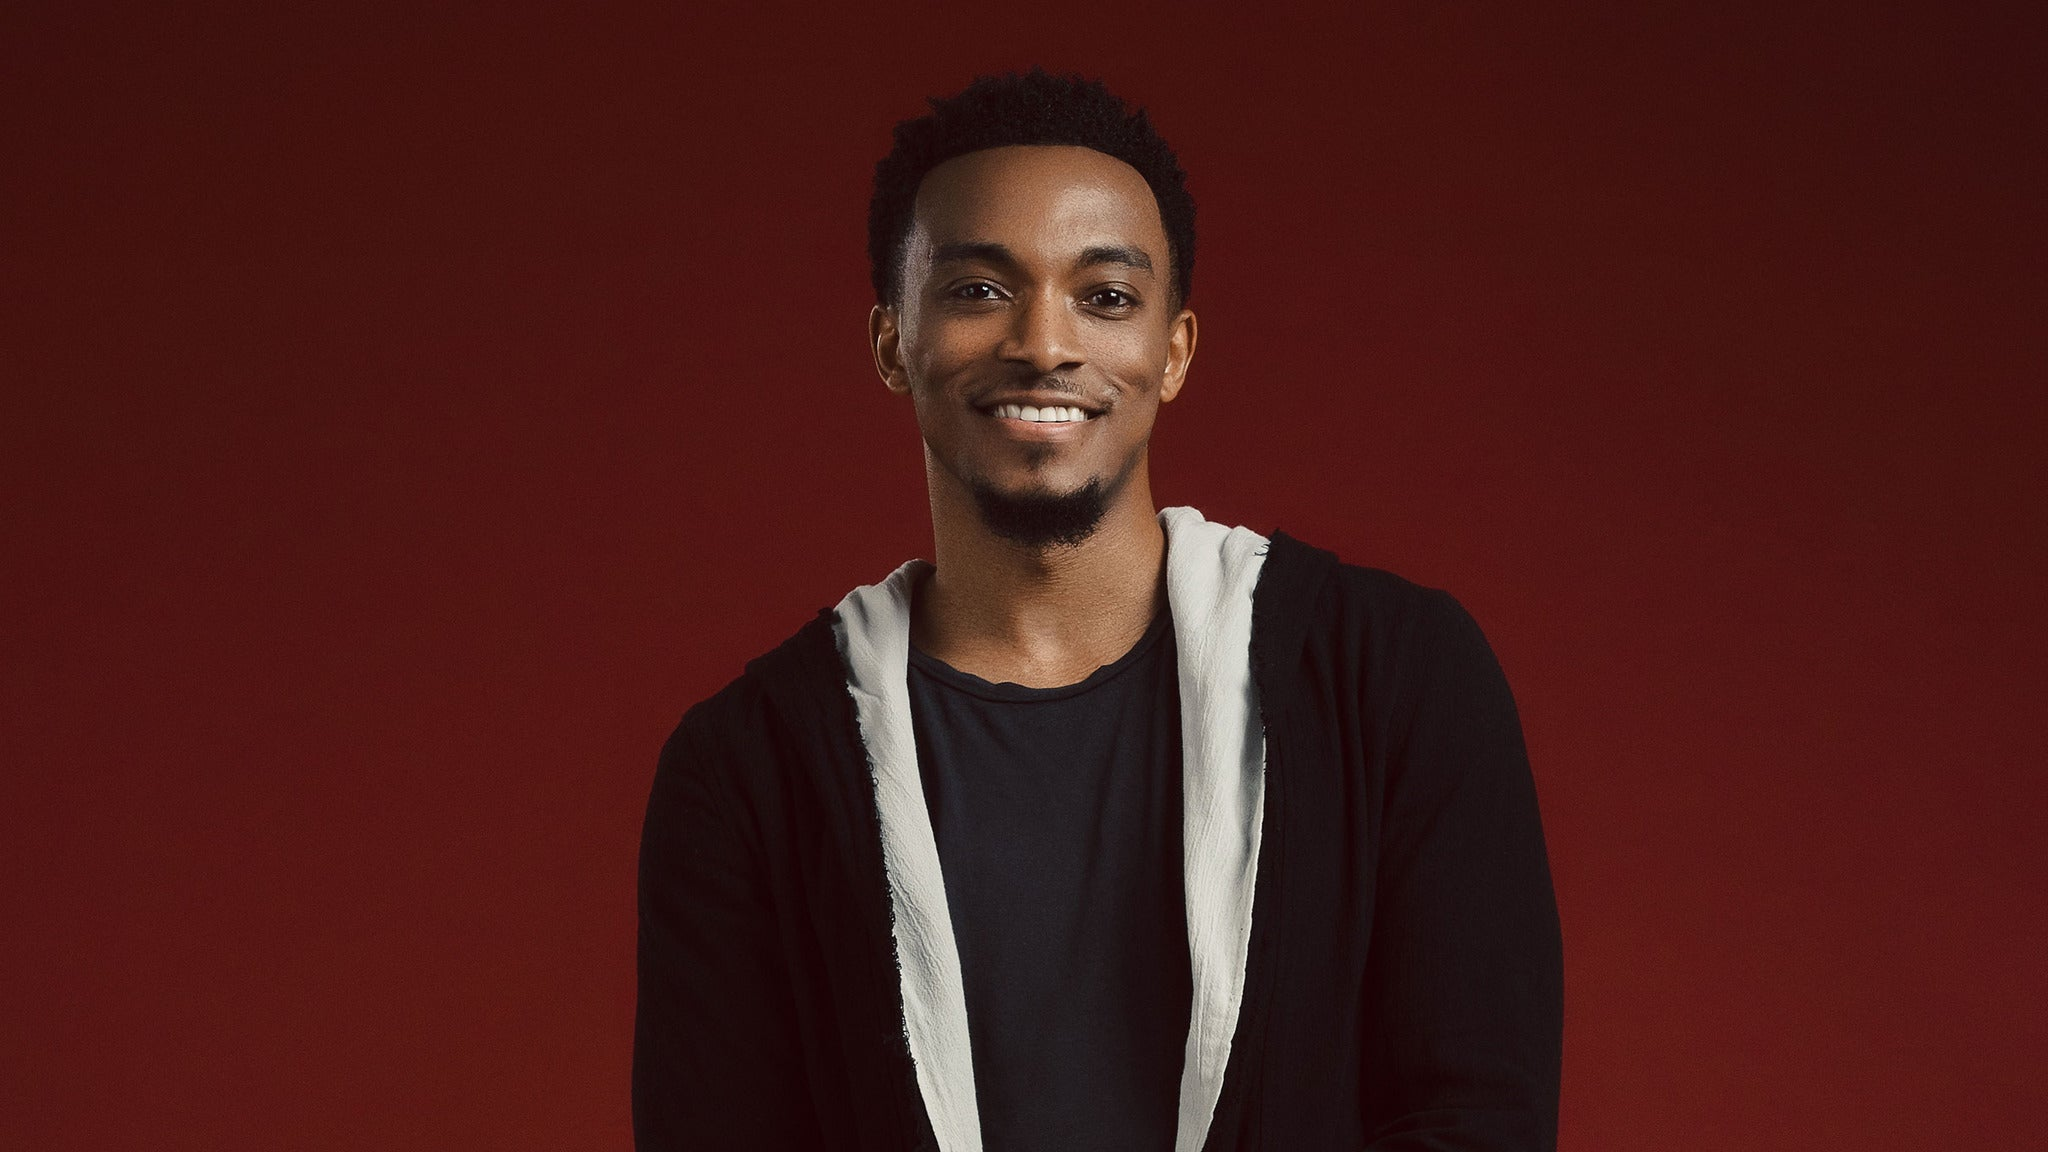 Jonathan McReynolds and Mali Music presale code for early tickets in Washington